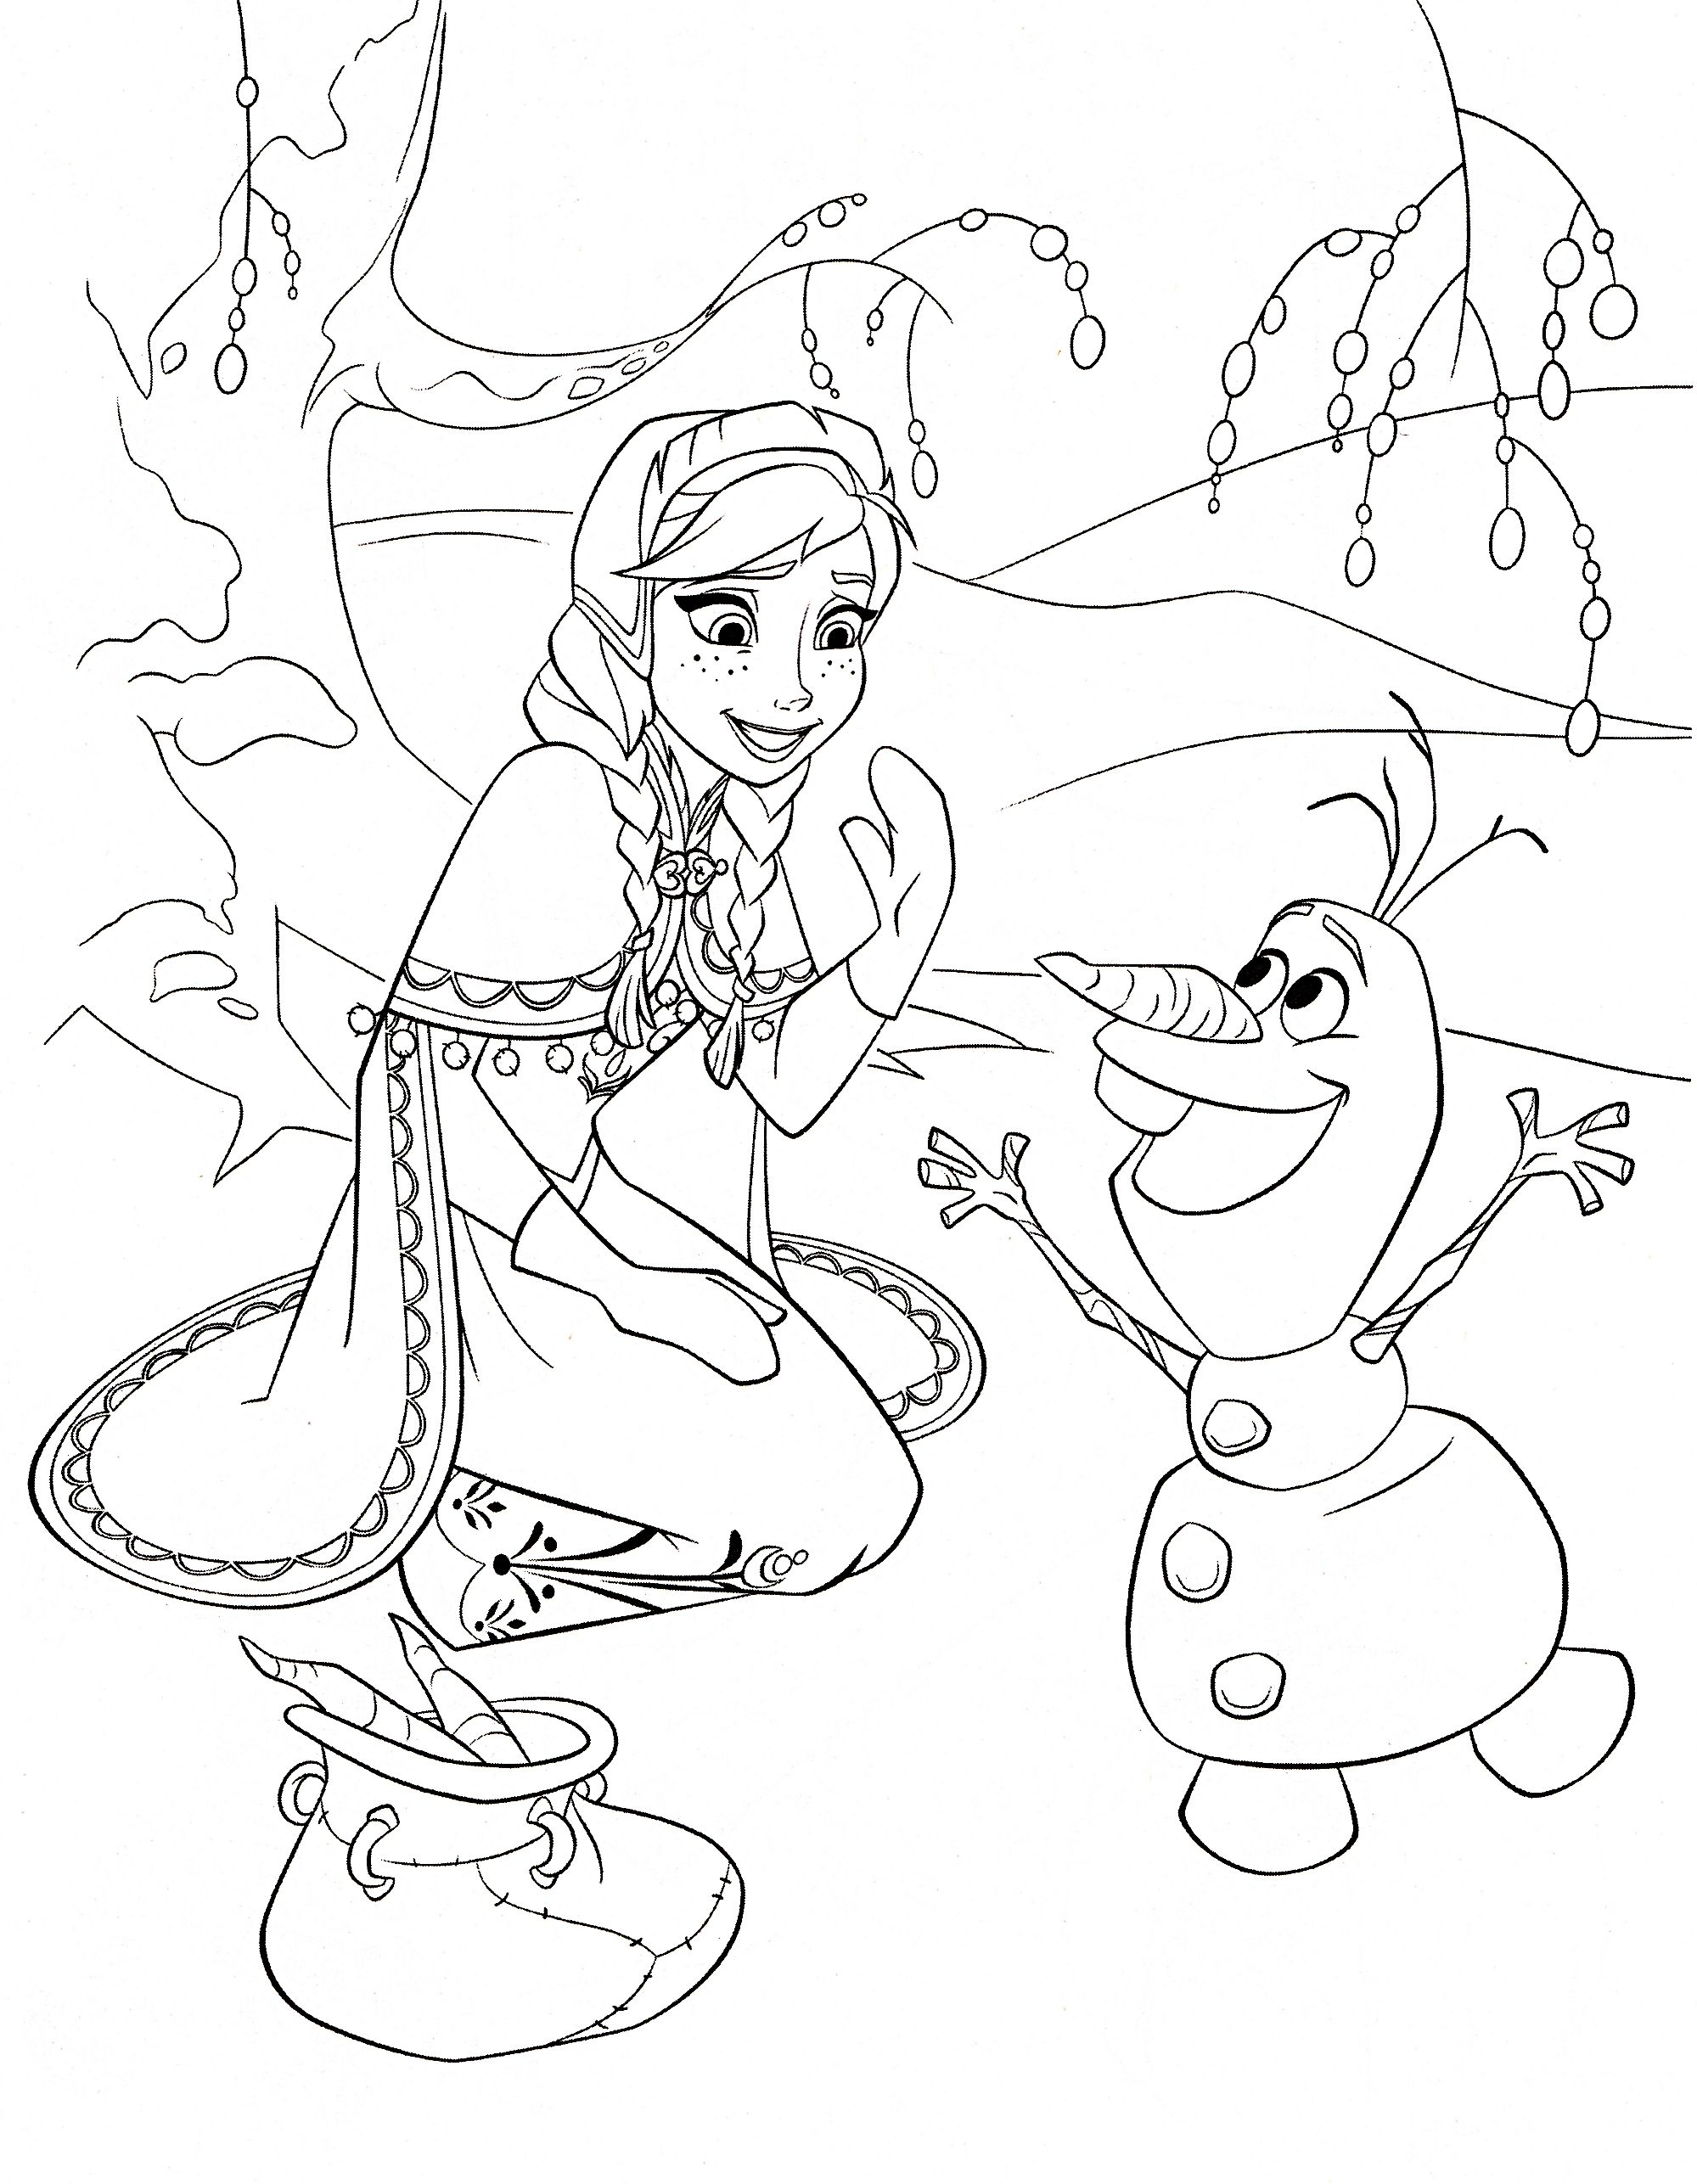 Drawing pages on computer - Free Frozen Printable Coloring Activity Pages Plus Free Computer Games